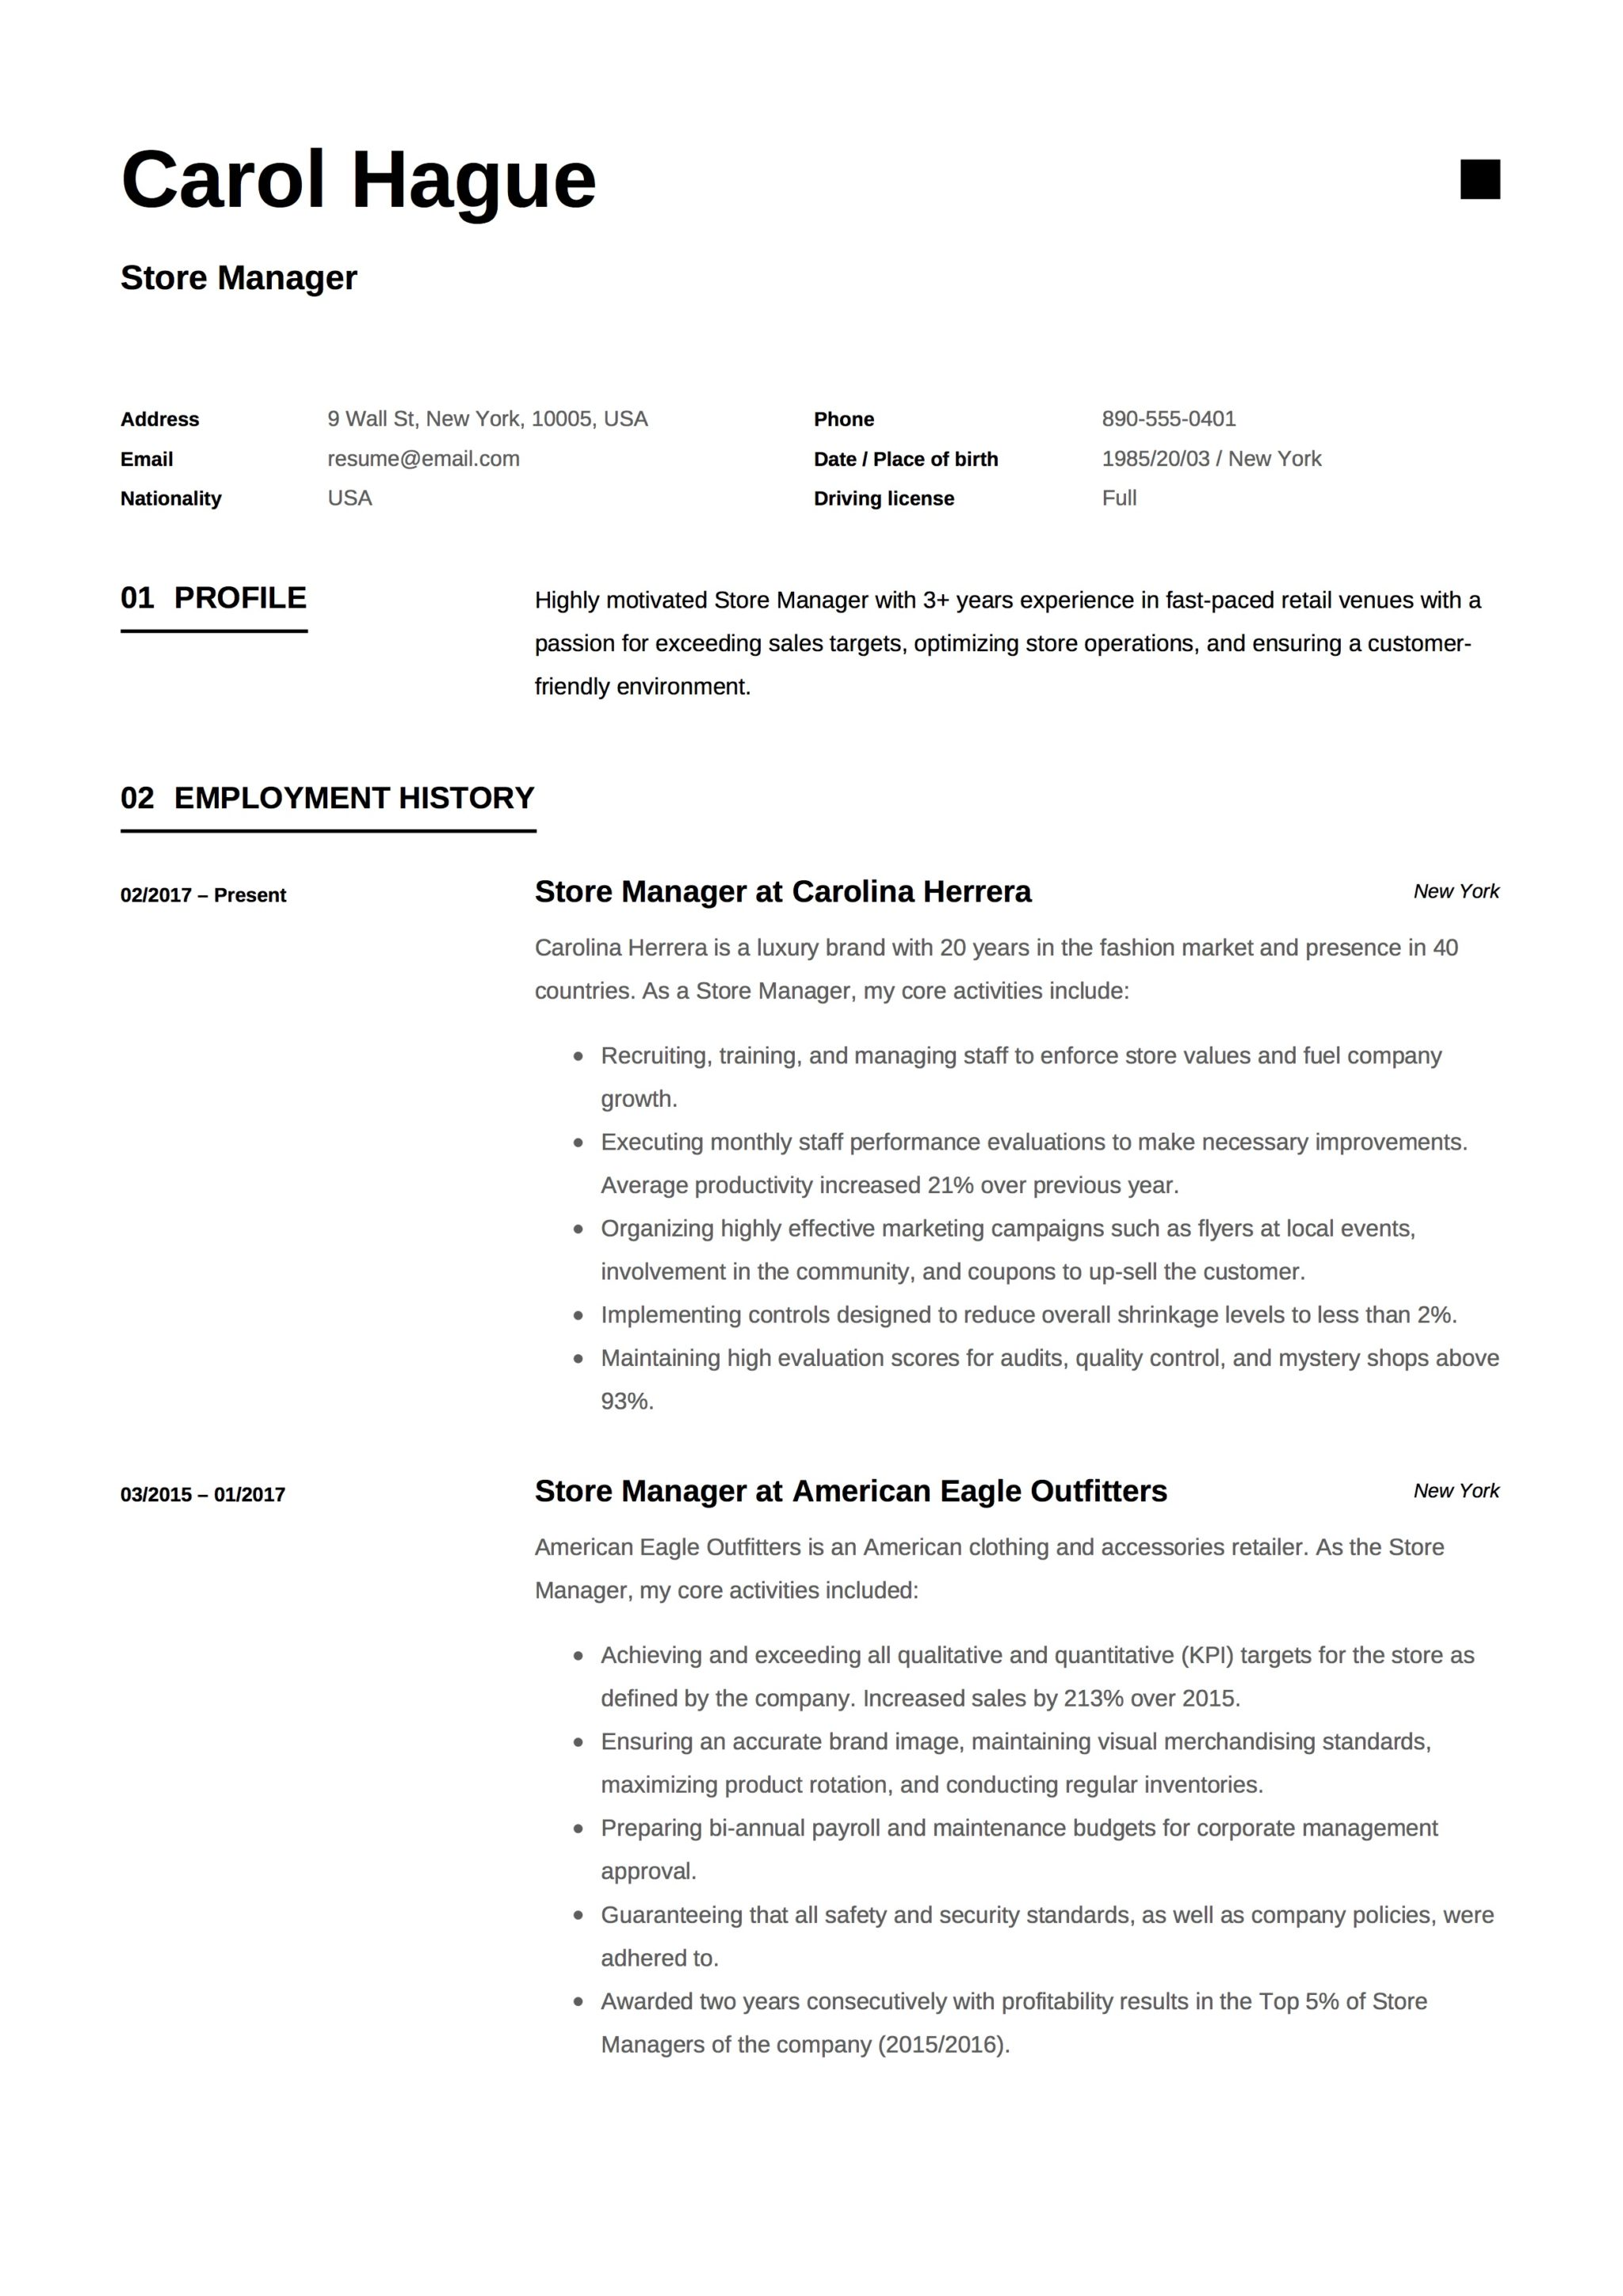 12 Store Manager Resume Sample(s) - 2018 (Free Downloads)